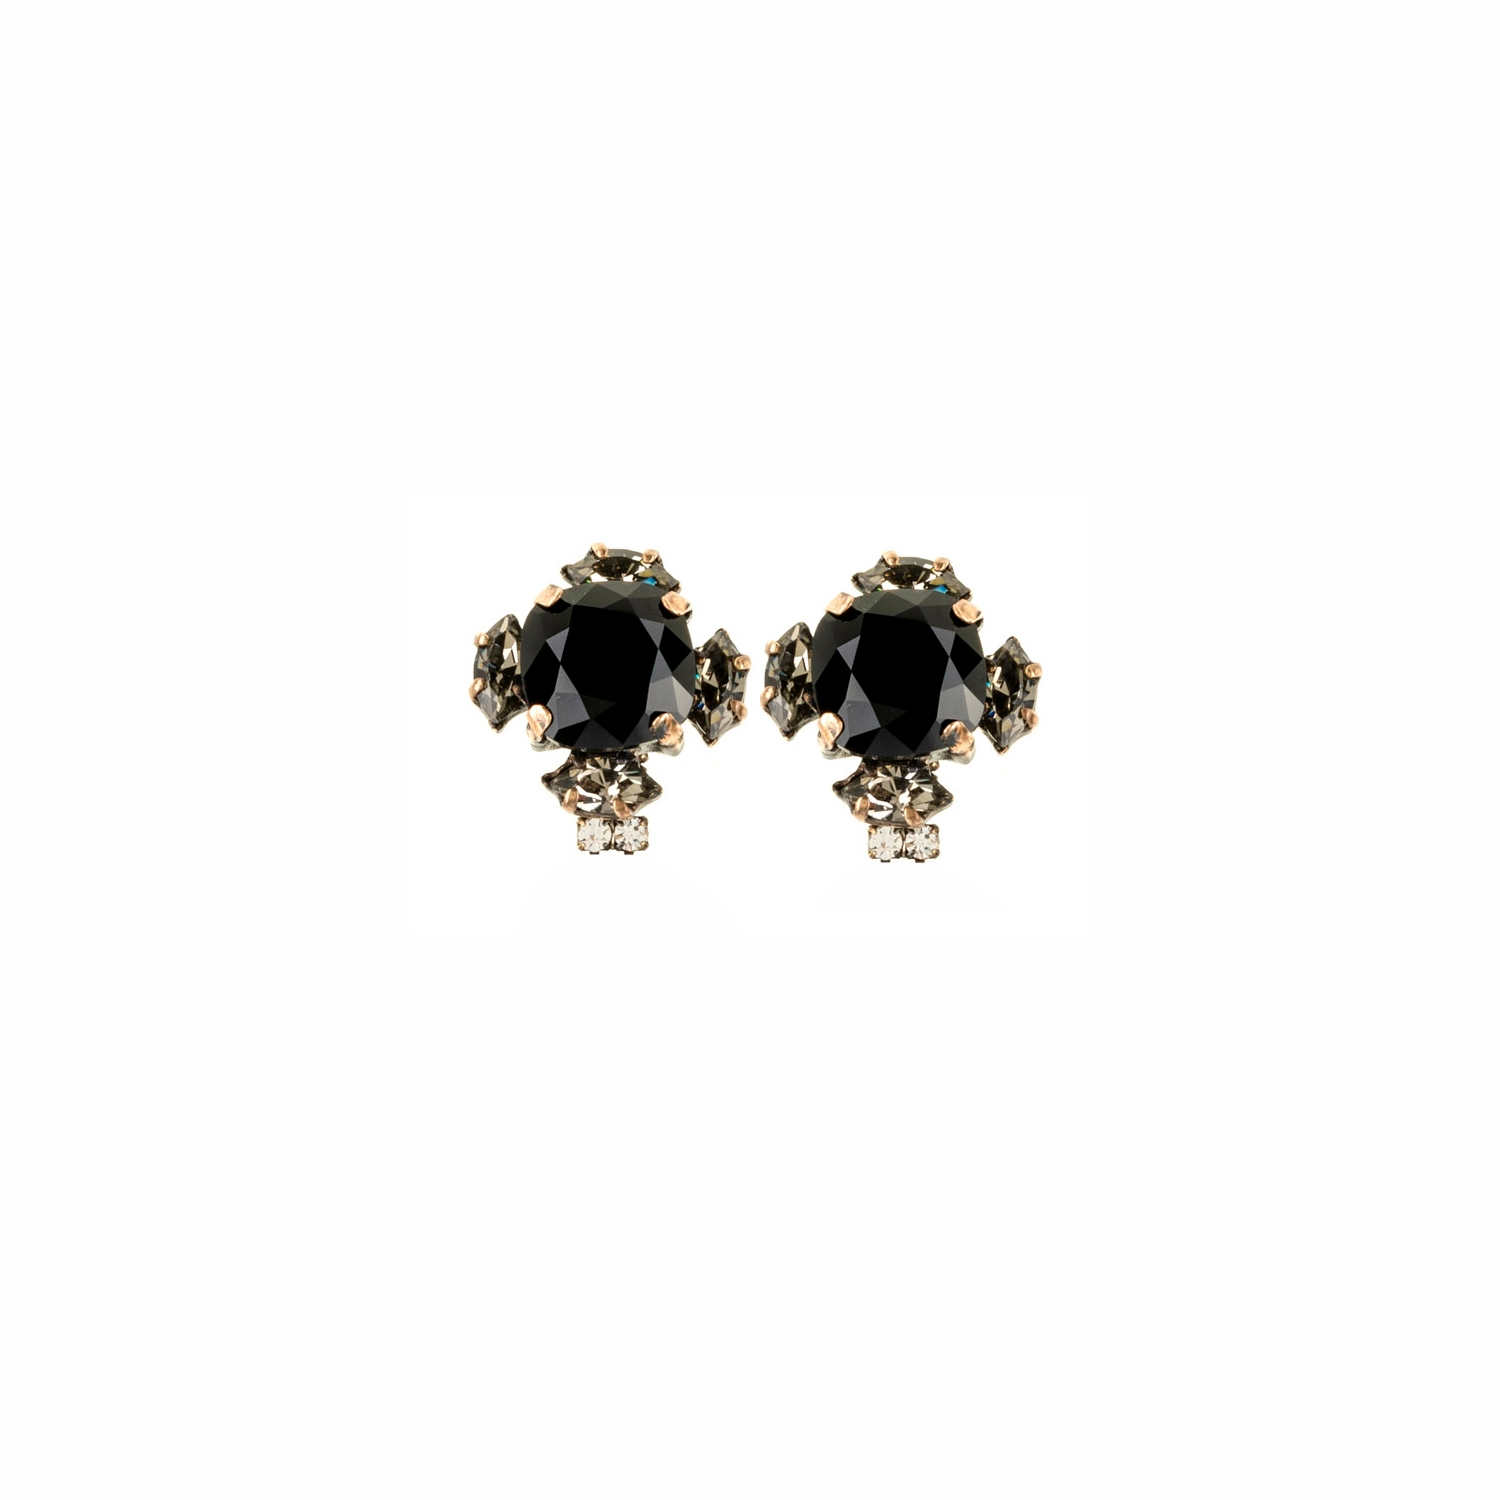 HALO & CO LARGE JET AND DIAMONG BLACK CRYSTAL CLUSTER EARRINGS